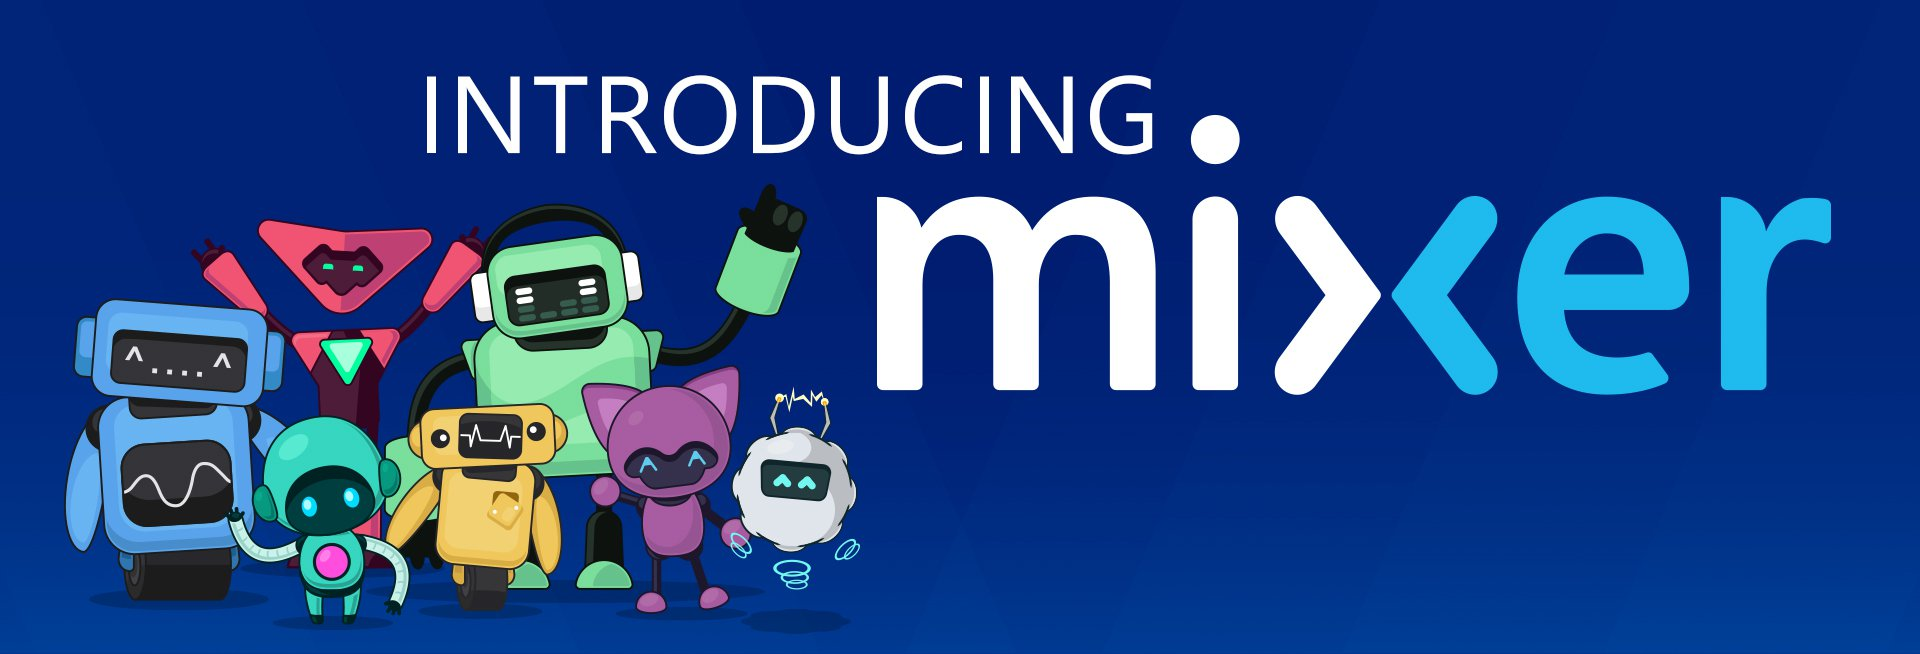 Microsoft rebrands Beam streaming as Mixer – TheCanadianTechie